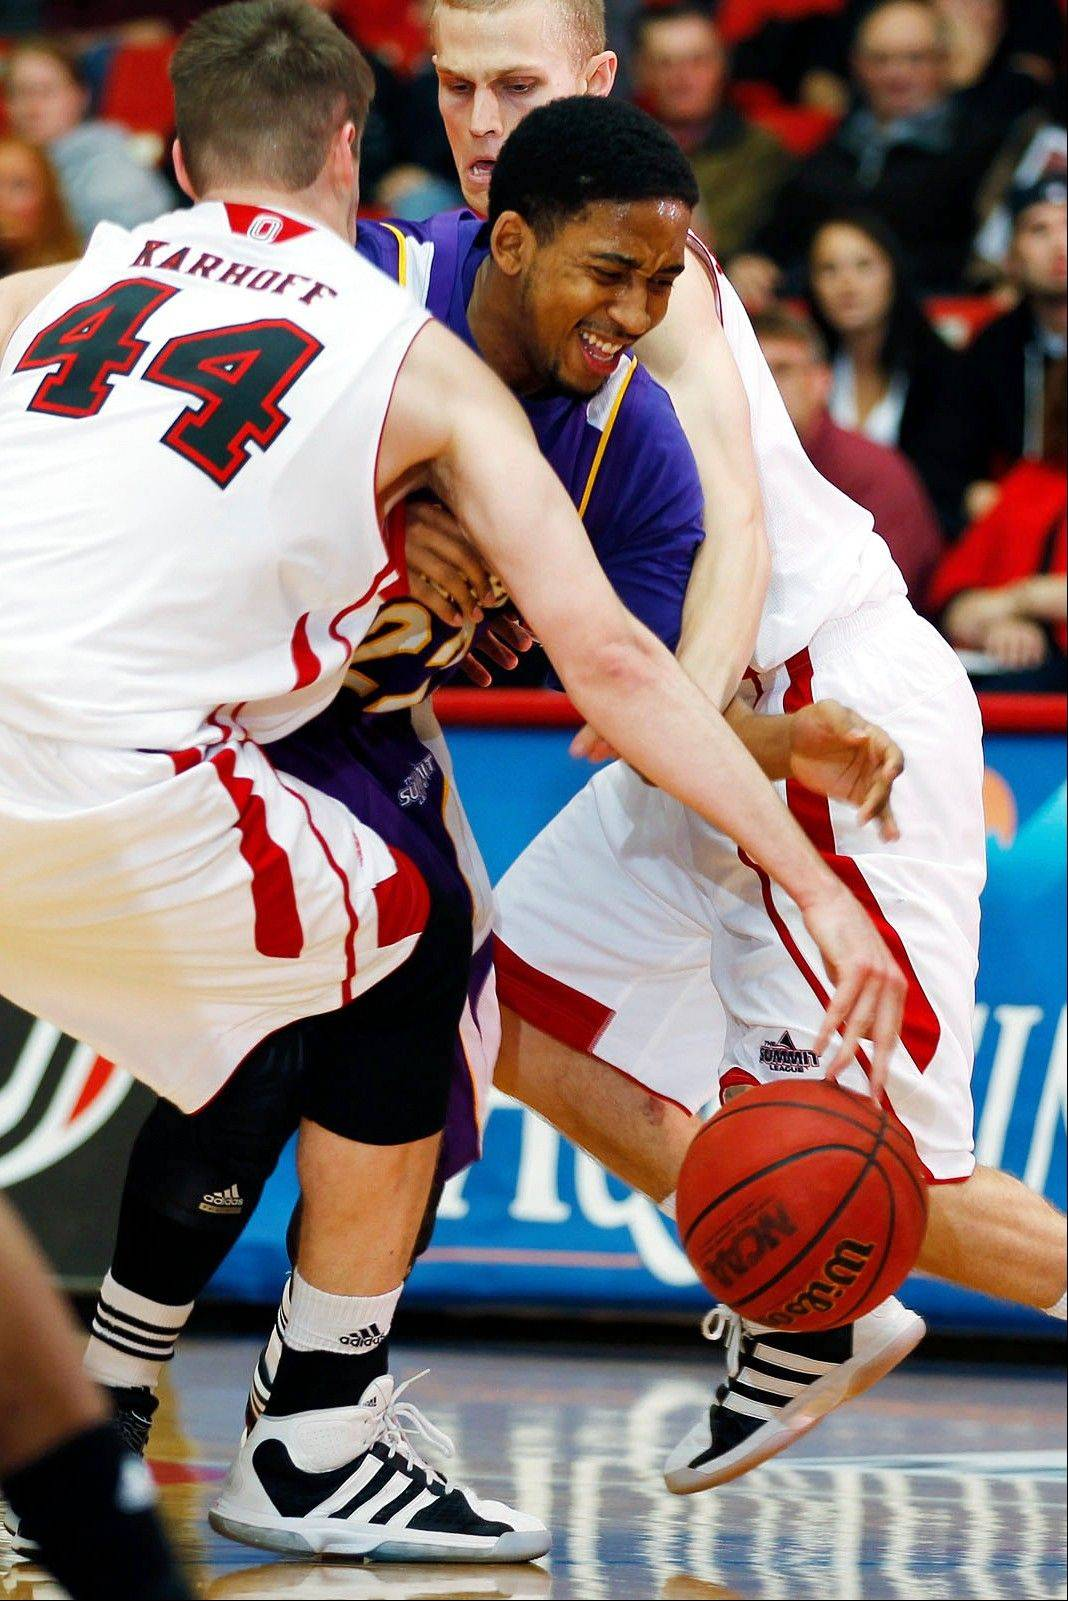 Western Illinois� Ceola Clark tries to split a double team last season in a game at Nebraska-Omaha.